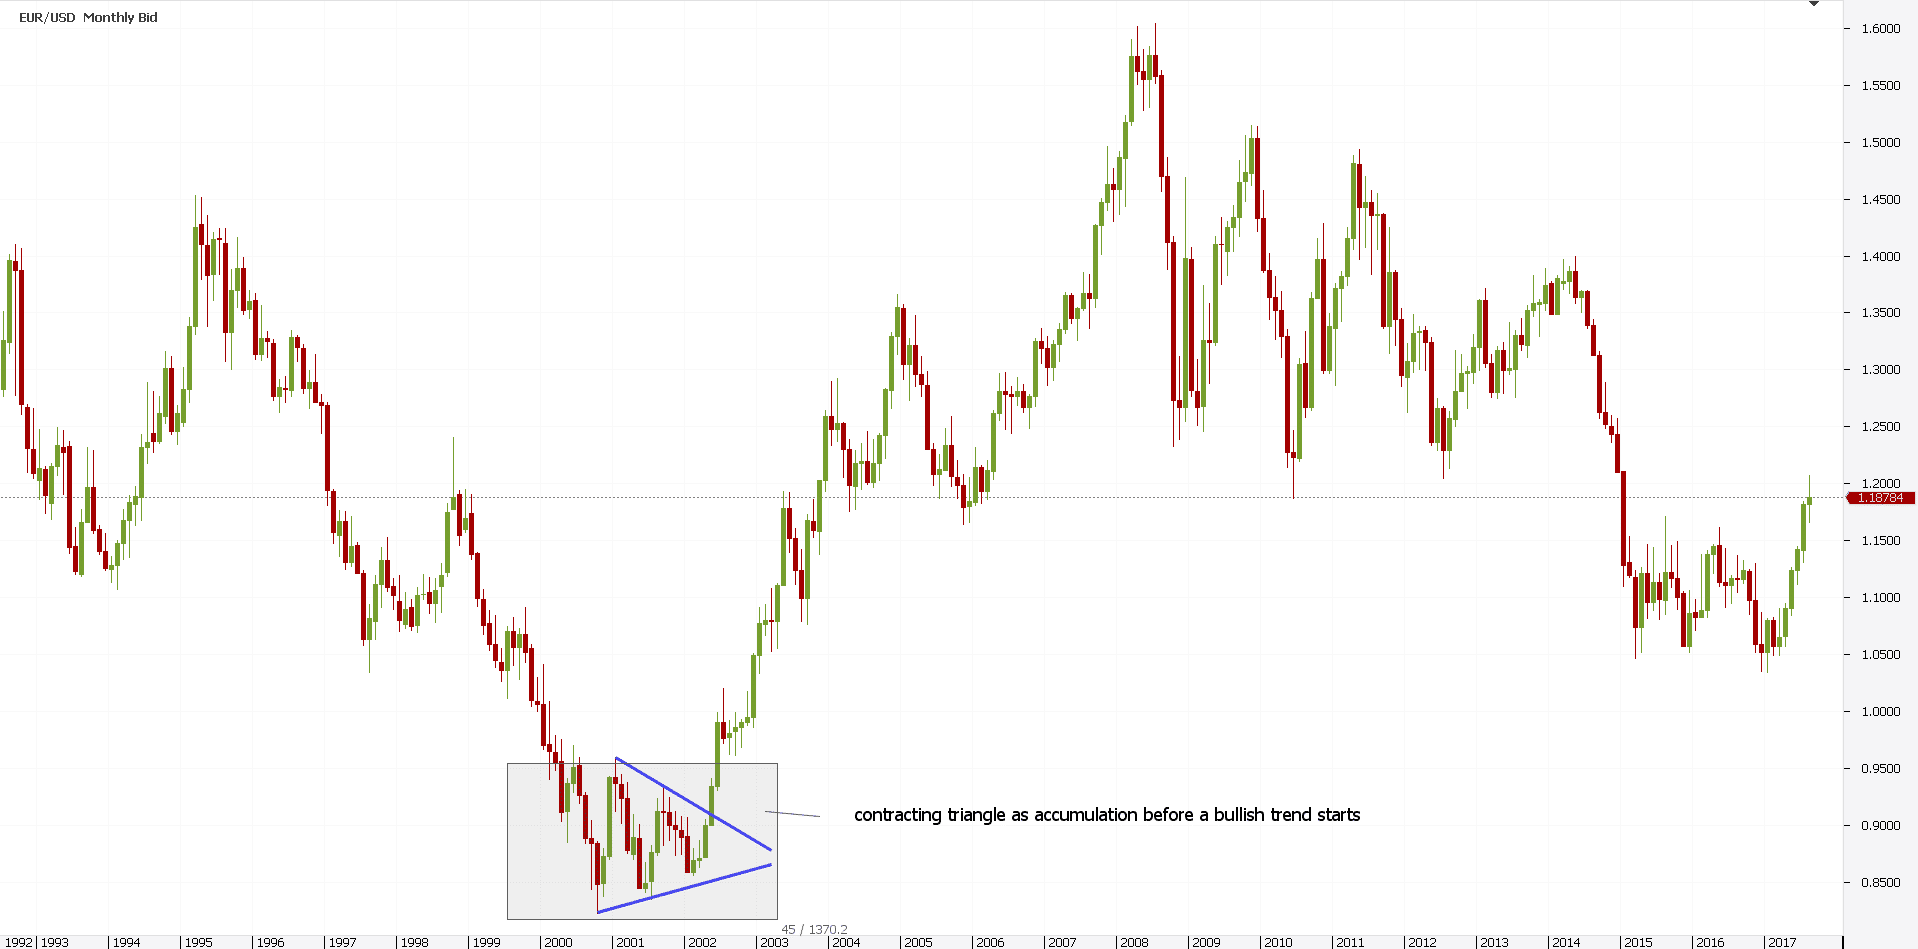 Dow Theory Technical Analysis